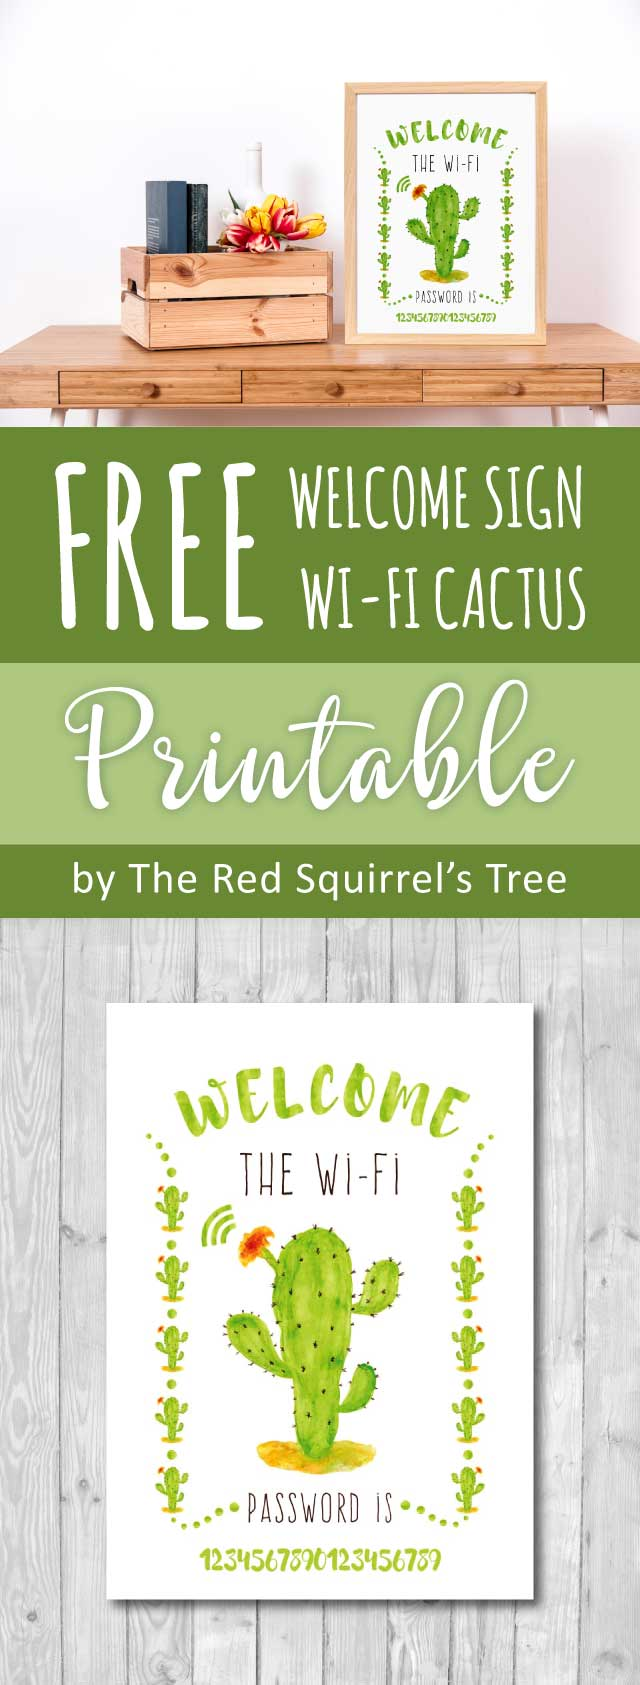 Free Cactus Wi-Fi printable to bring some desert vibes into your home décor!